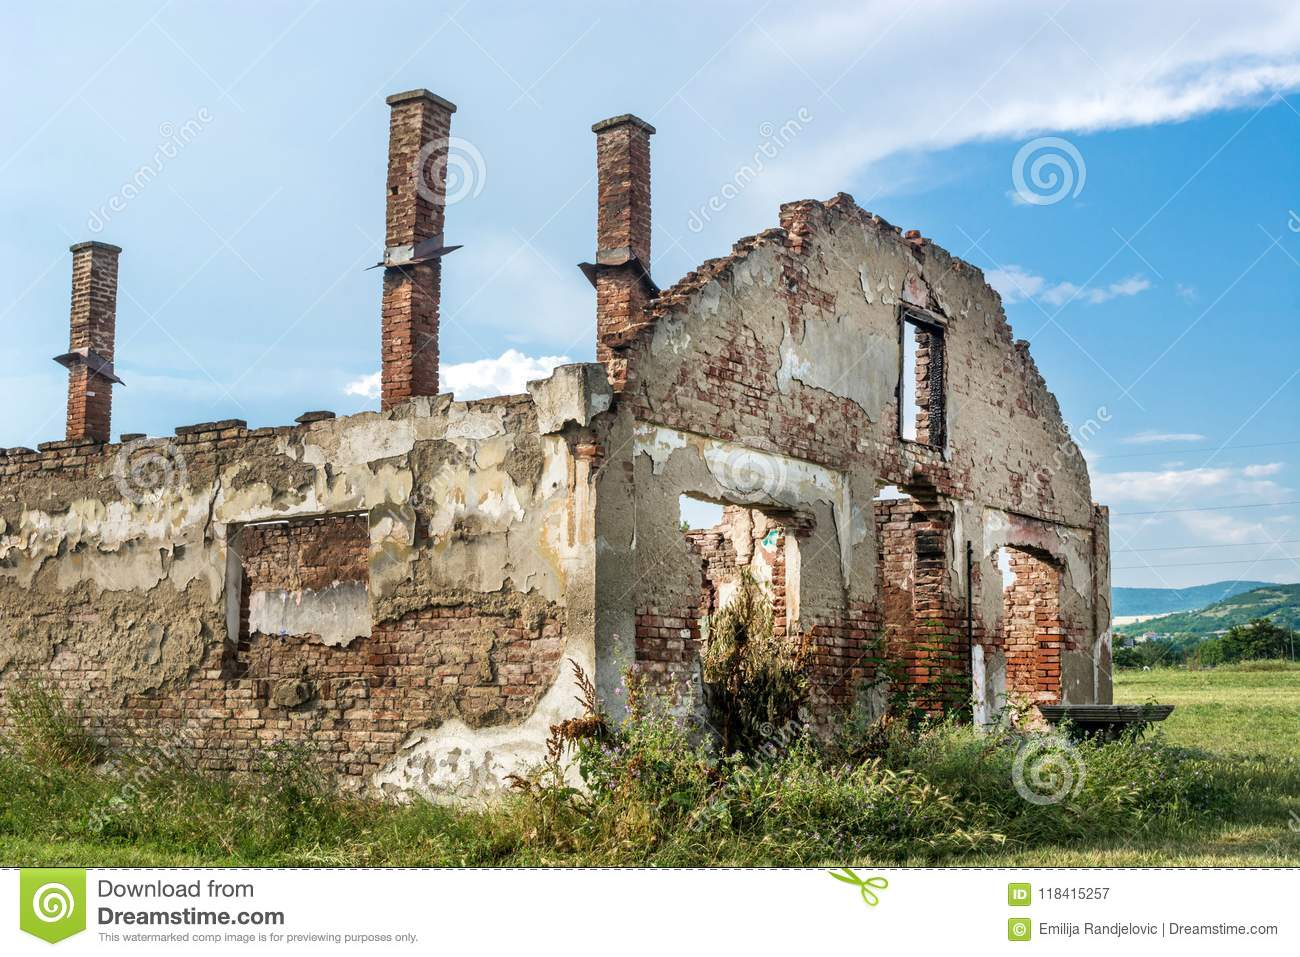 Destroyed old brick house without roof and with chimneys, broken windows, window frames, door and bricks